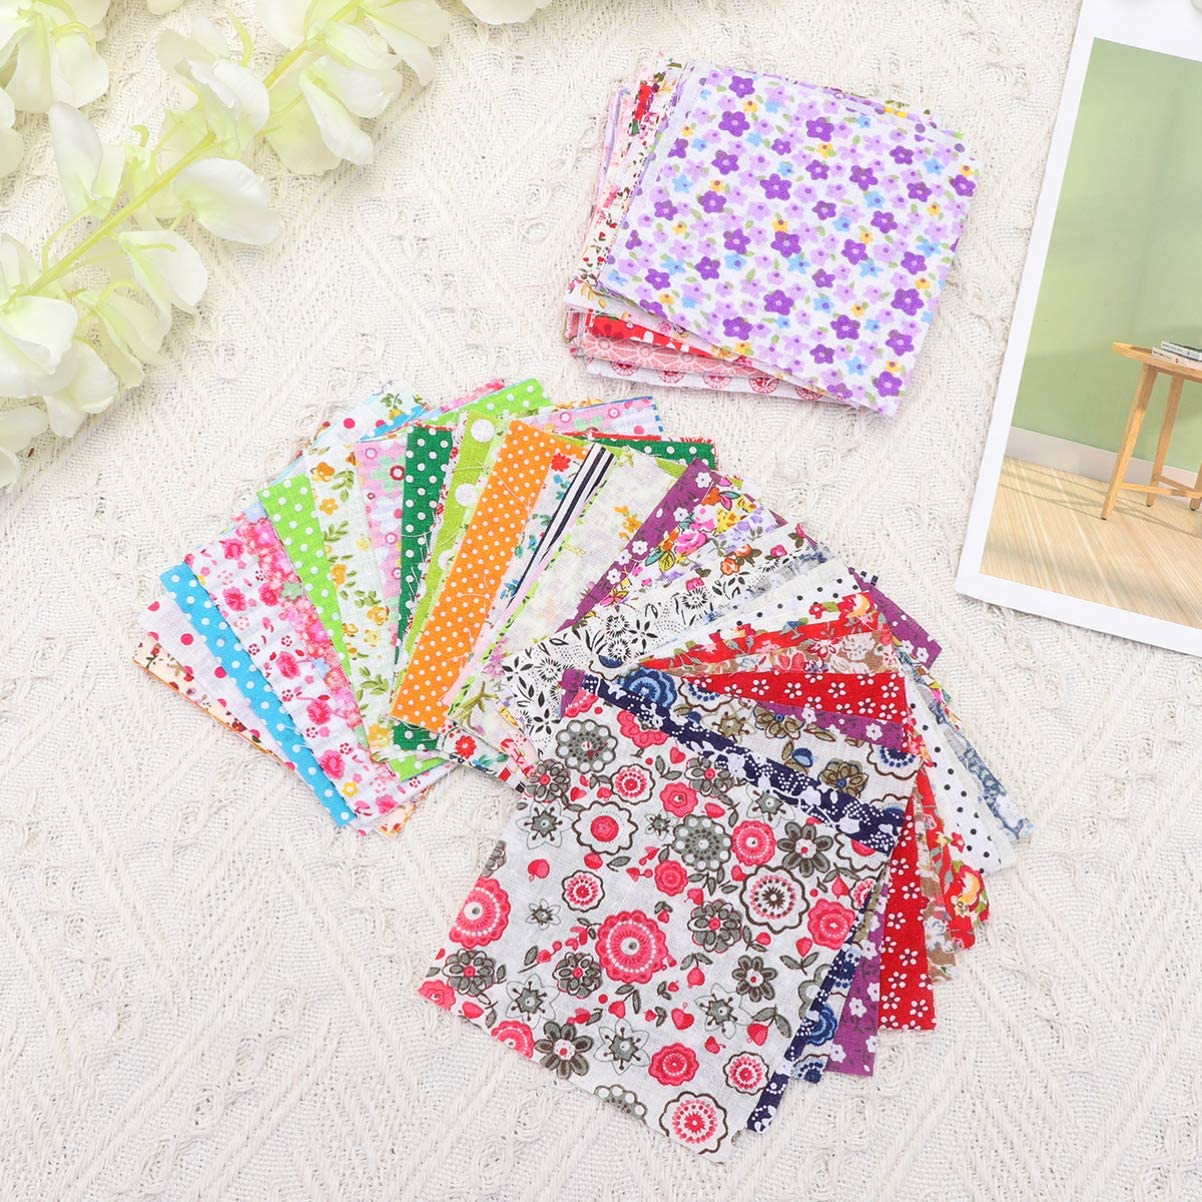 Random Pattern Healifty 100PCS Patchwork Fabric Cotton DIY 10x10cm Printed Fabric Material for Sewing Scrapbooking Quilting Craft